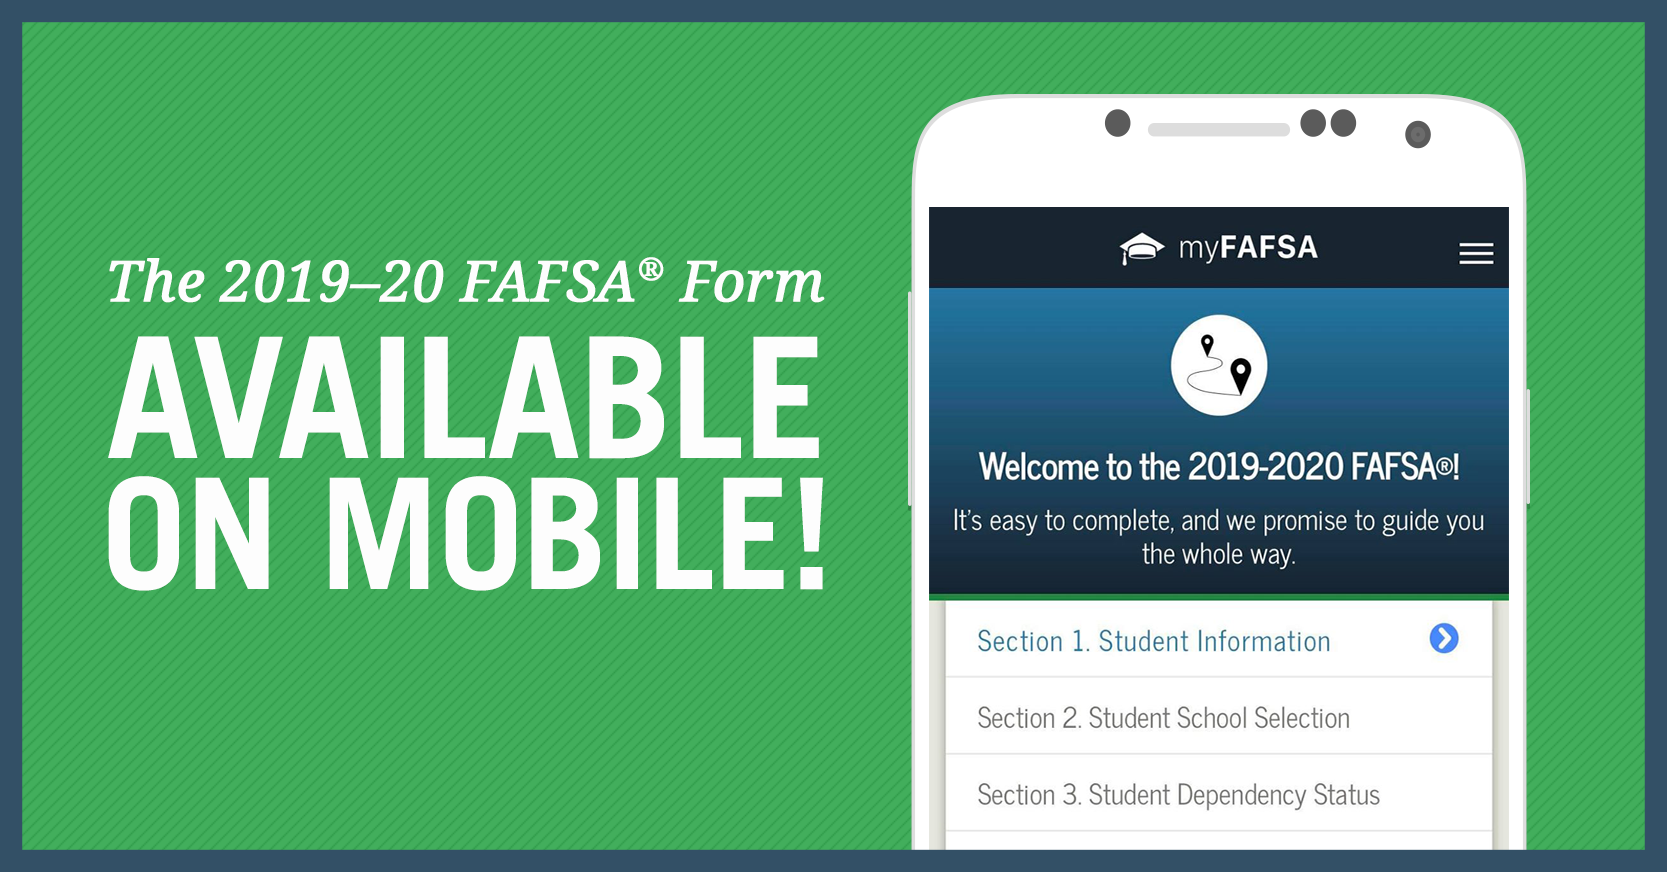 FAFSA has a mobile app